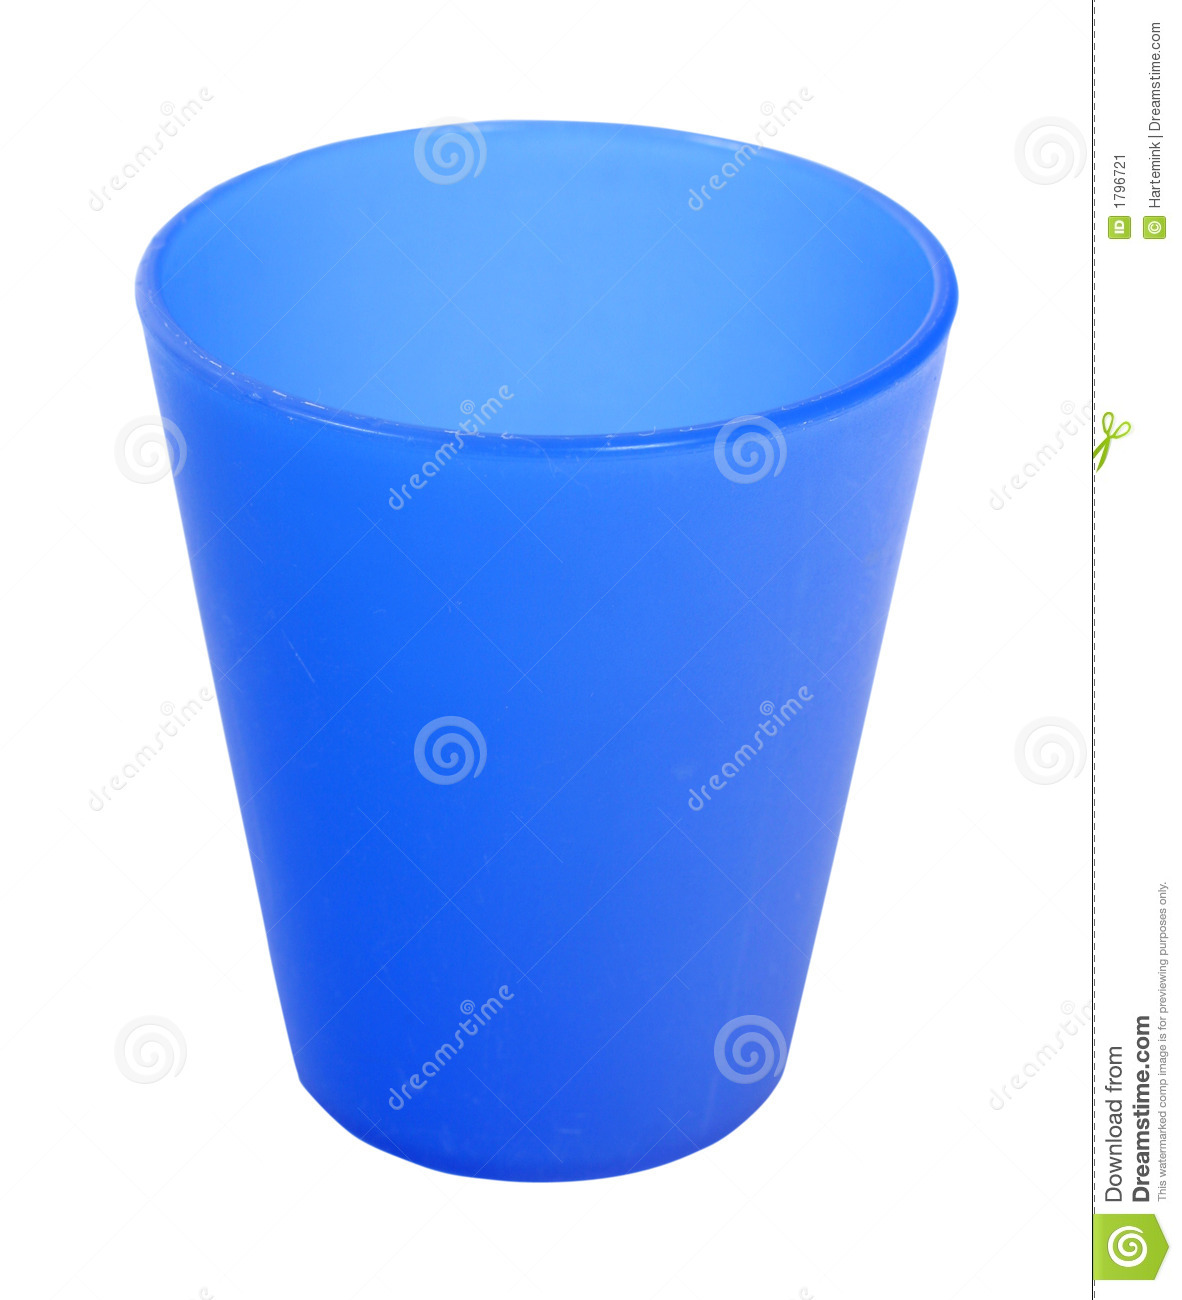 Plastic Cup Clipart   Clipart Panda   Free Clipart Images